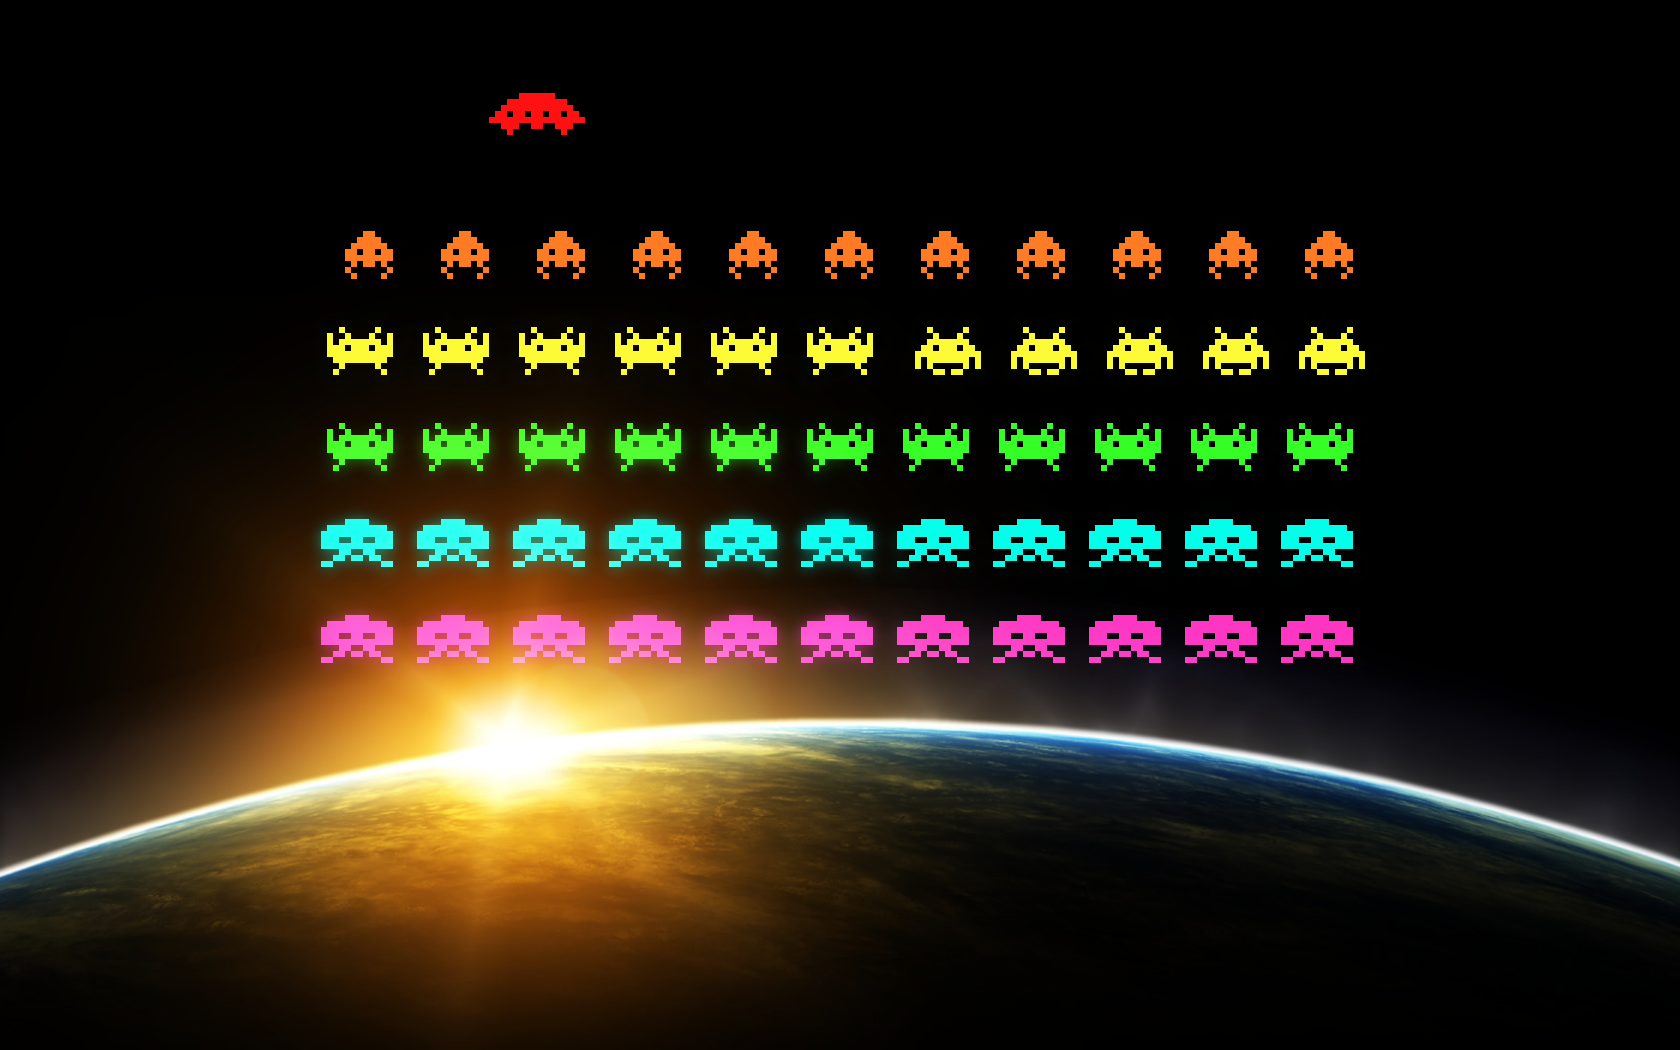 invaders retro games video best widescreen background HD Wallpaper 1680x1050